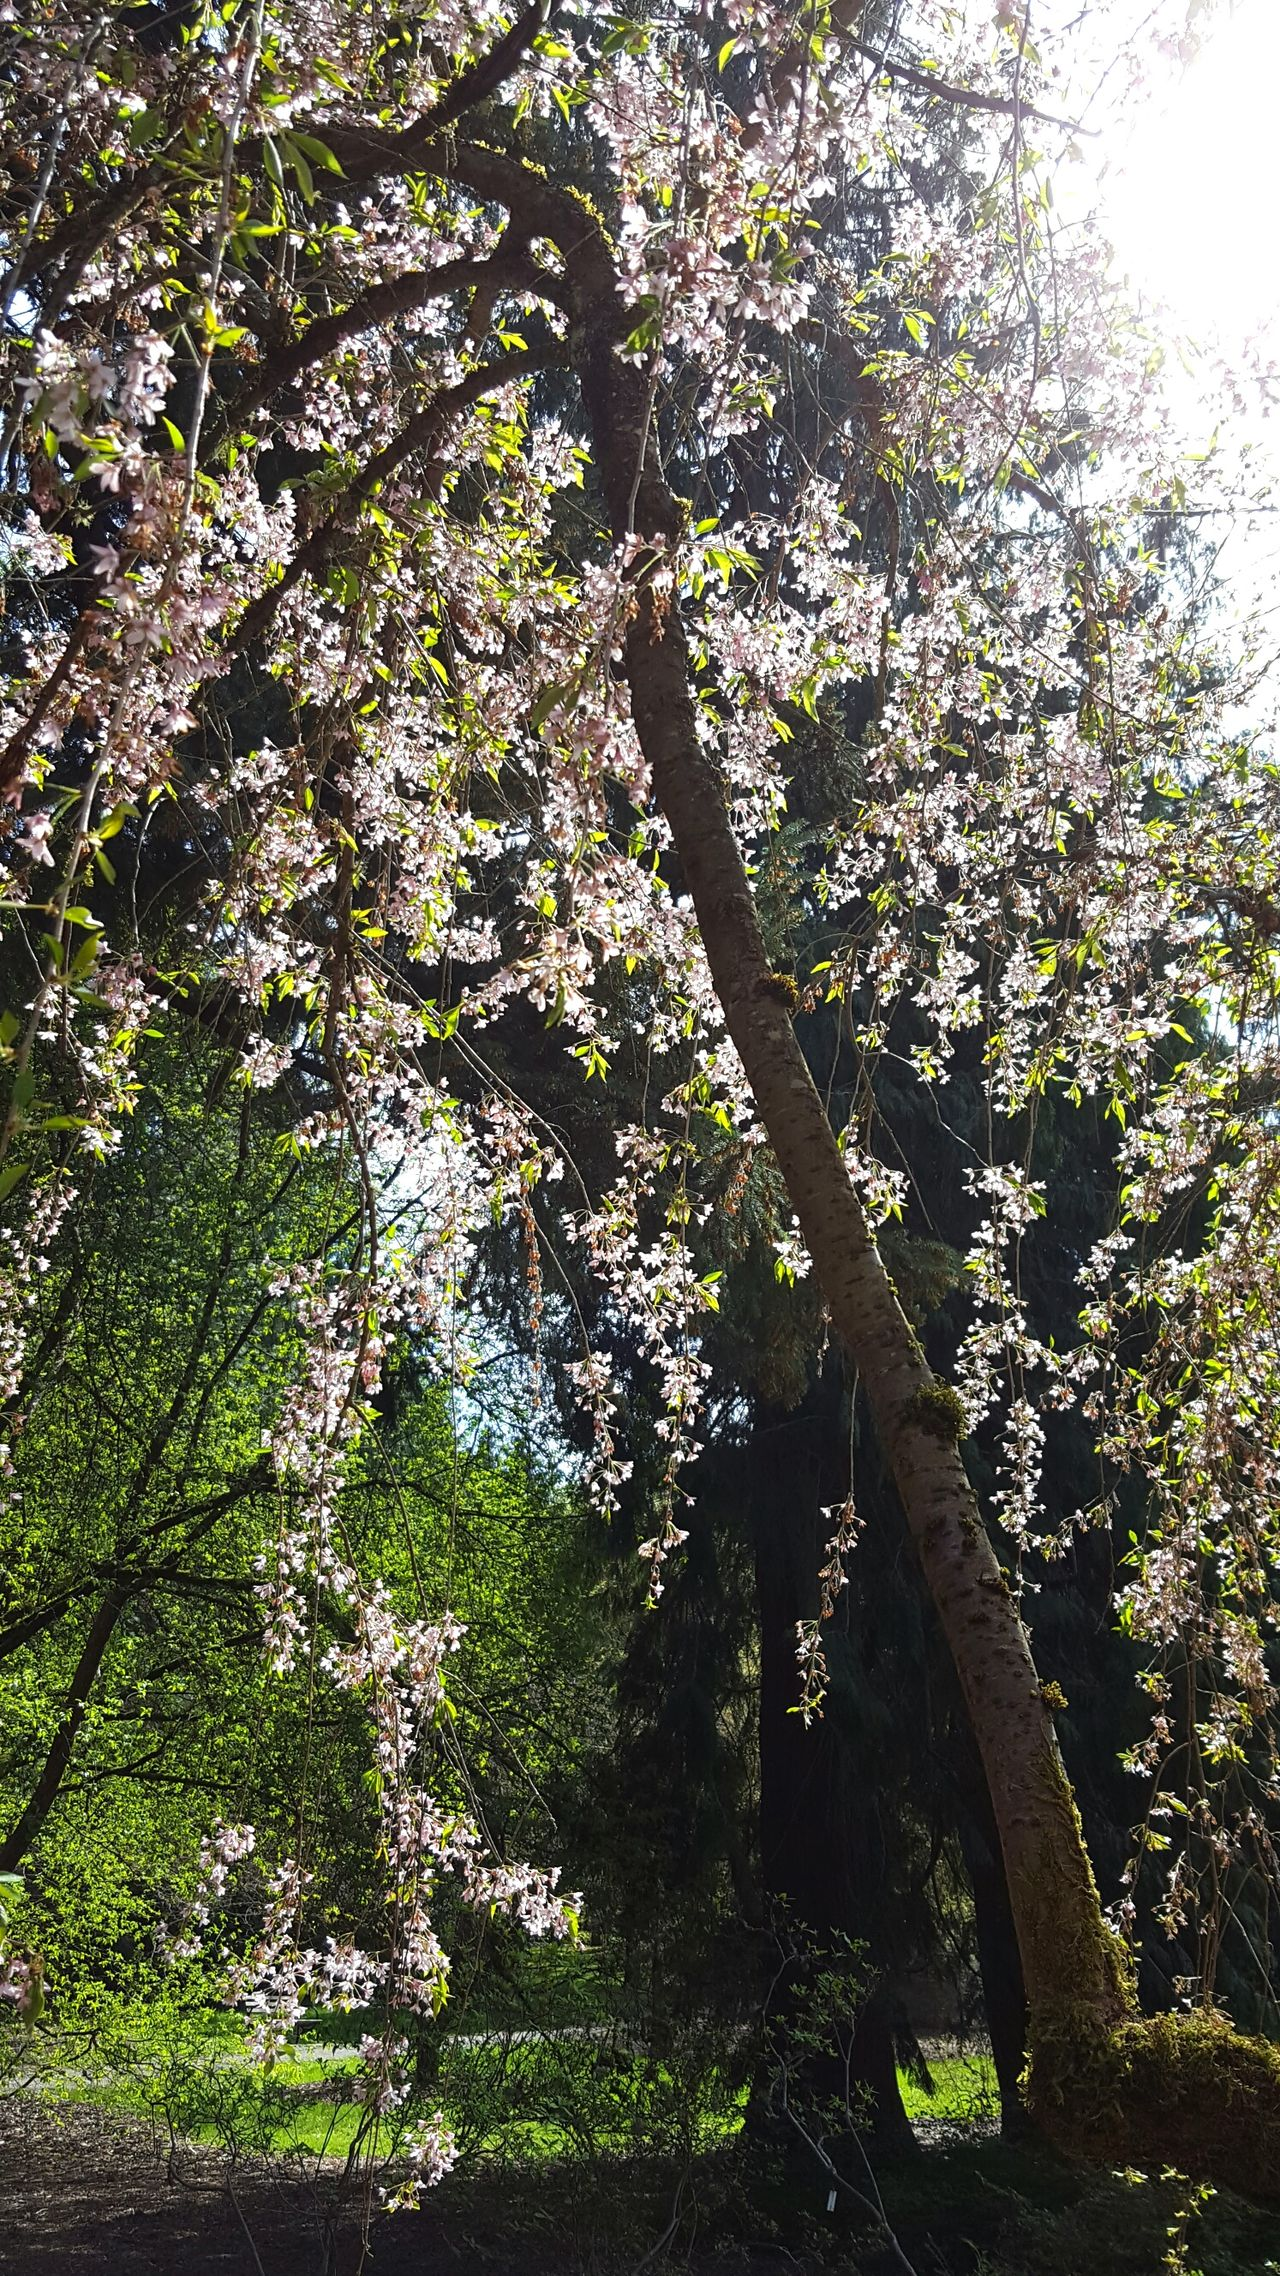 I love Spring !! Tree Trees Flowering Tree Blossoms  Blossoming Tree Springtime Spring Has Sprung Hanging Vines Sunlit Soft Colors  Flowers Naturelovers Nature Pretty Sunlight Beautiful Nature EyeEm Nature Lover Trailing Plant Lacey